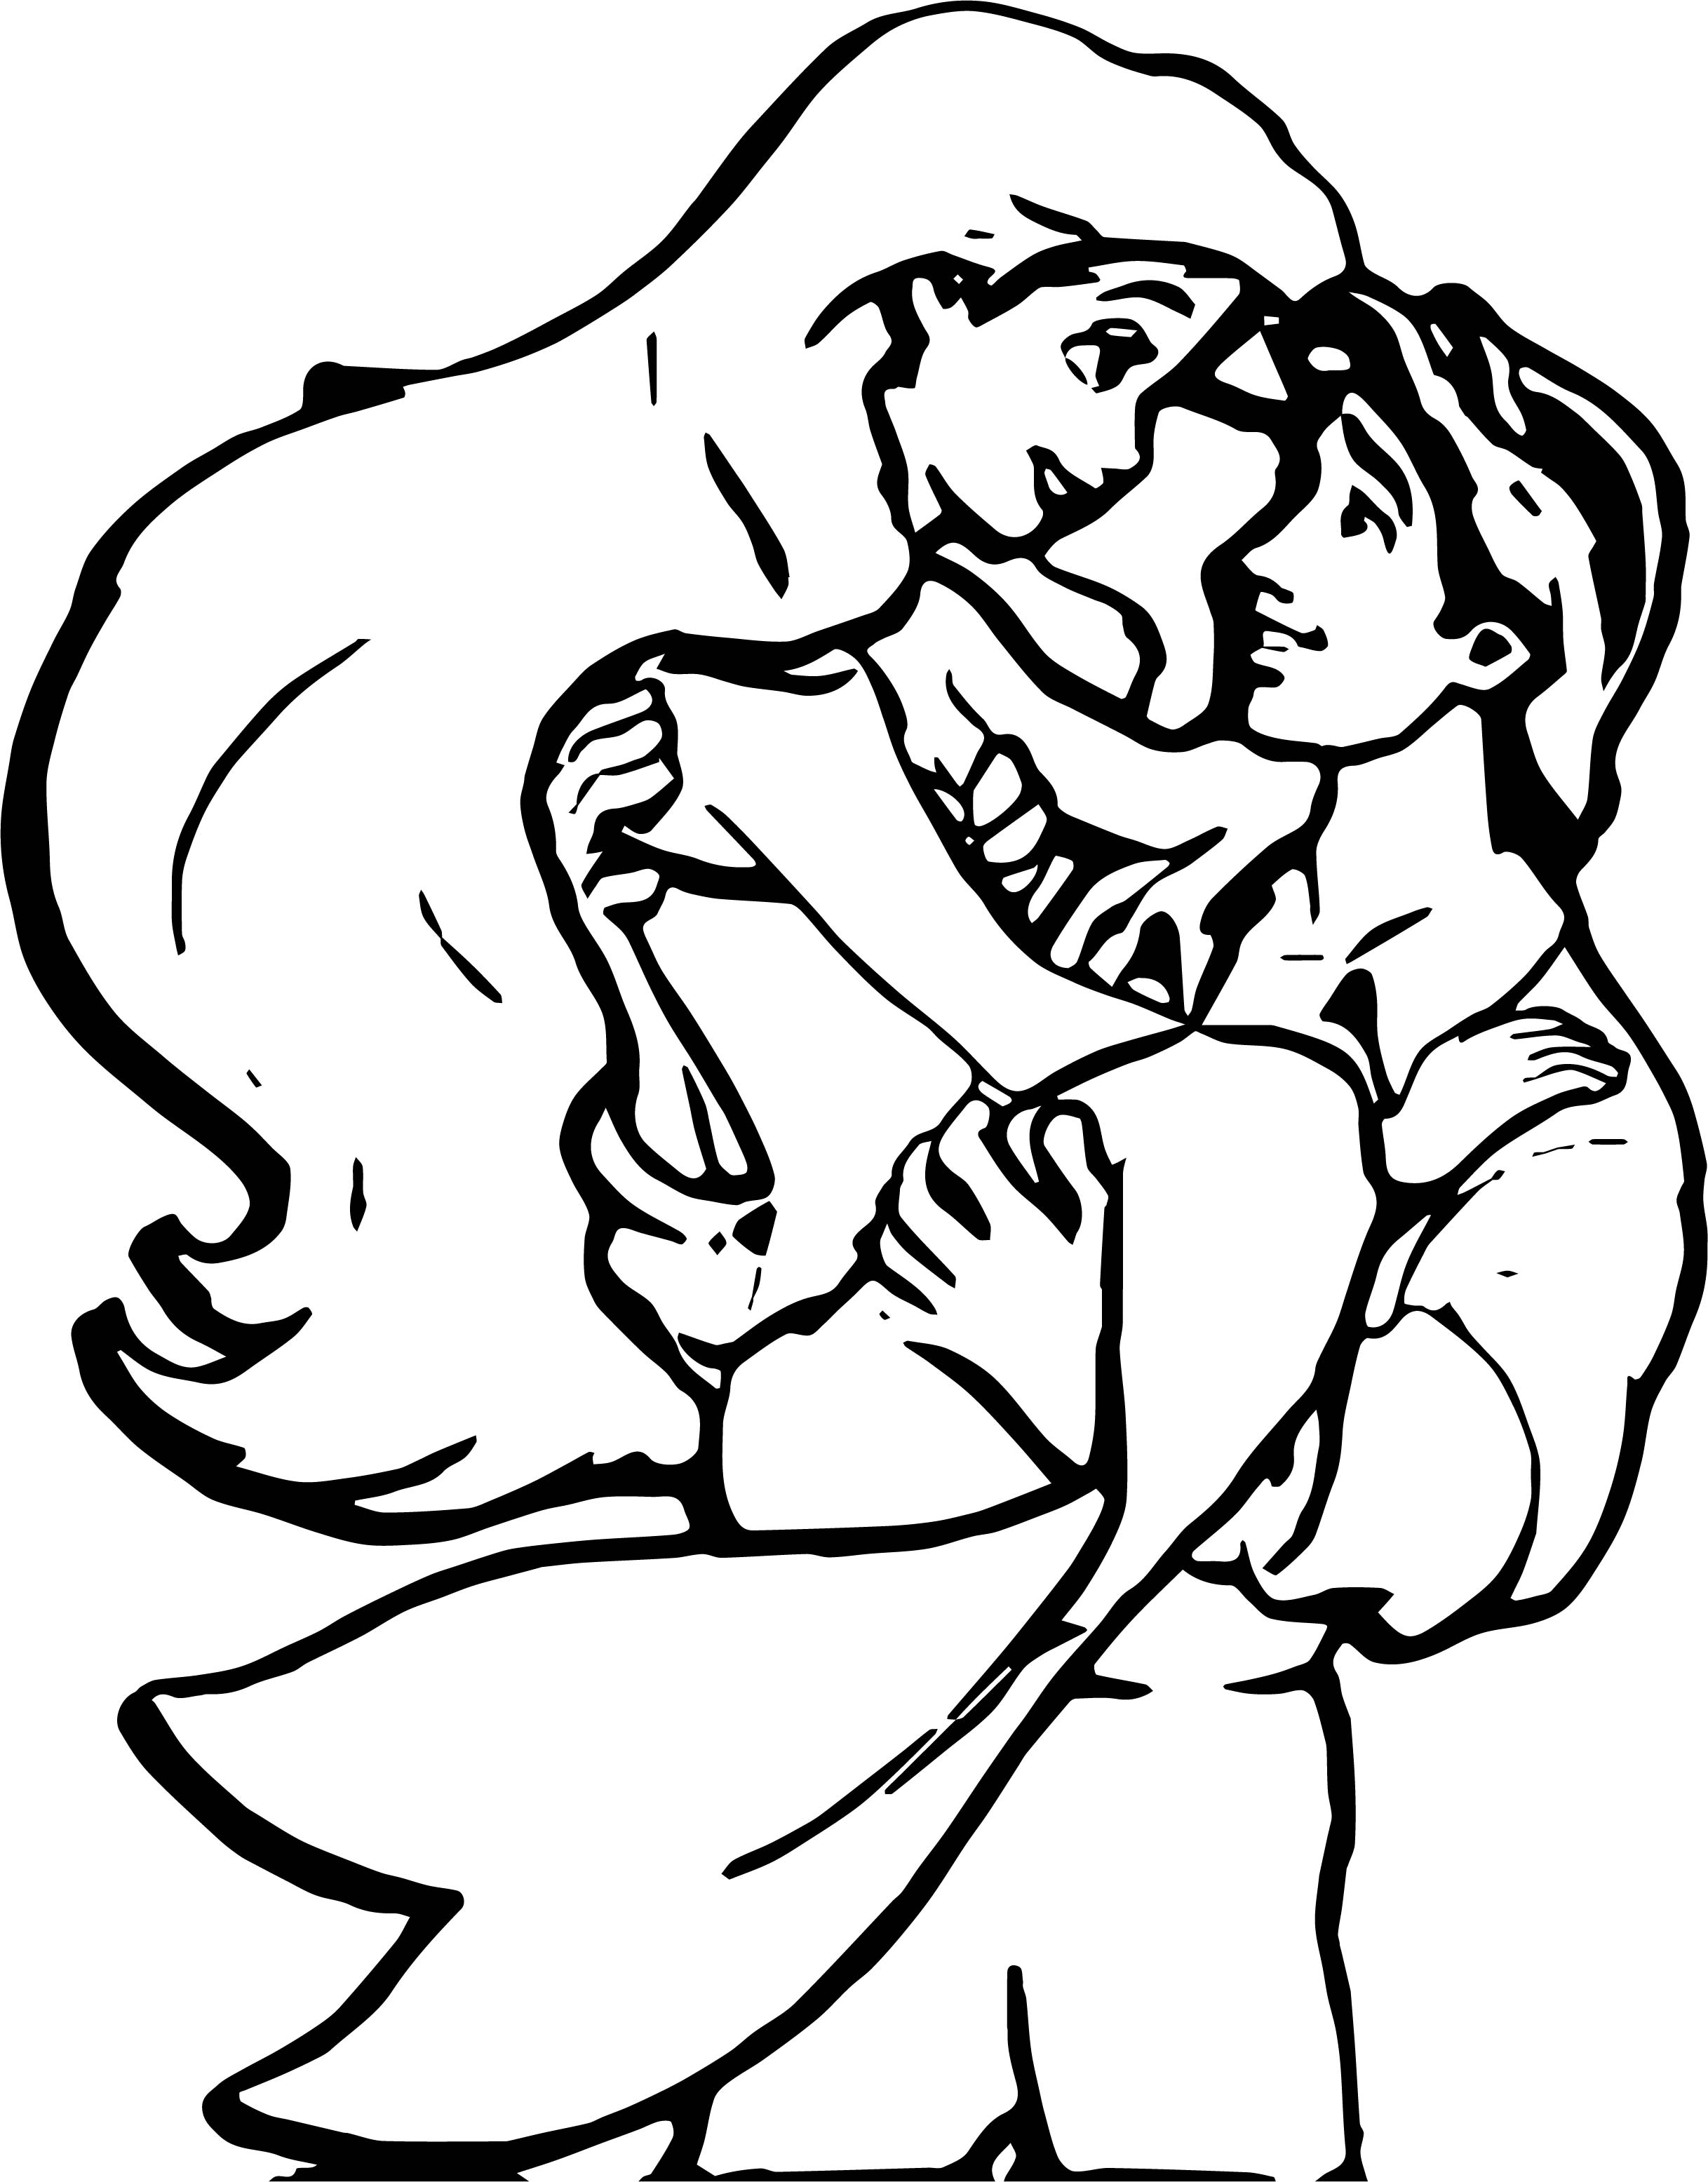 Coloring pages for boyfriend - Ariel Mermaid And Boyfriend Coloring Page